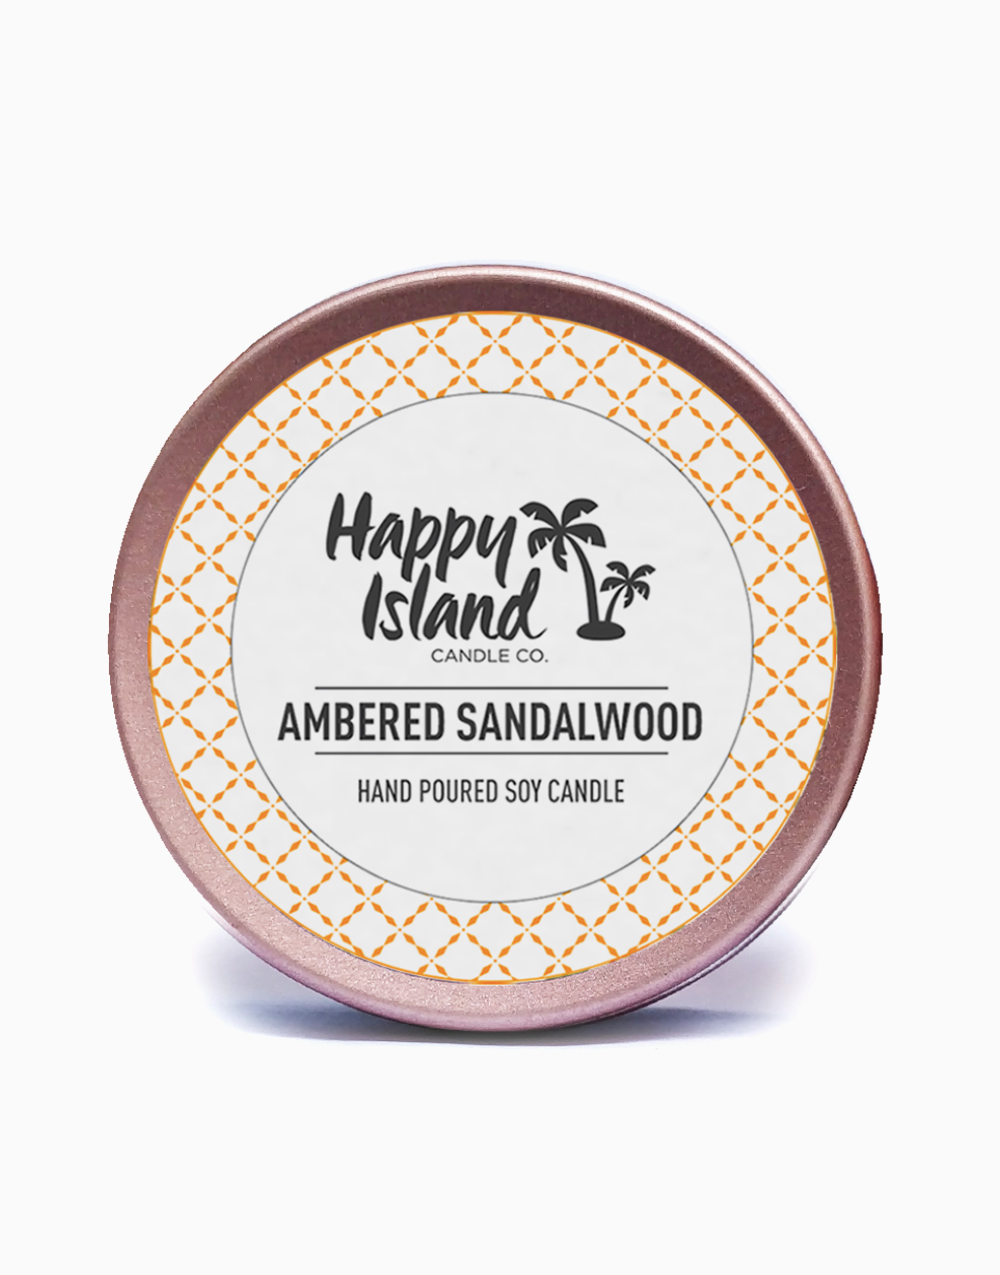 Ambered Sandalwood Soy Candle (2oz/60ml) by Happy Island